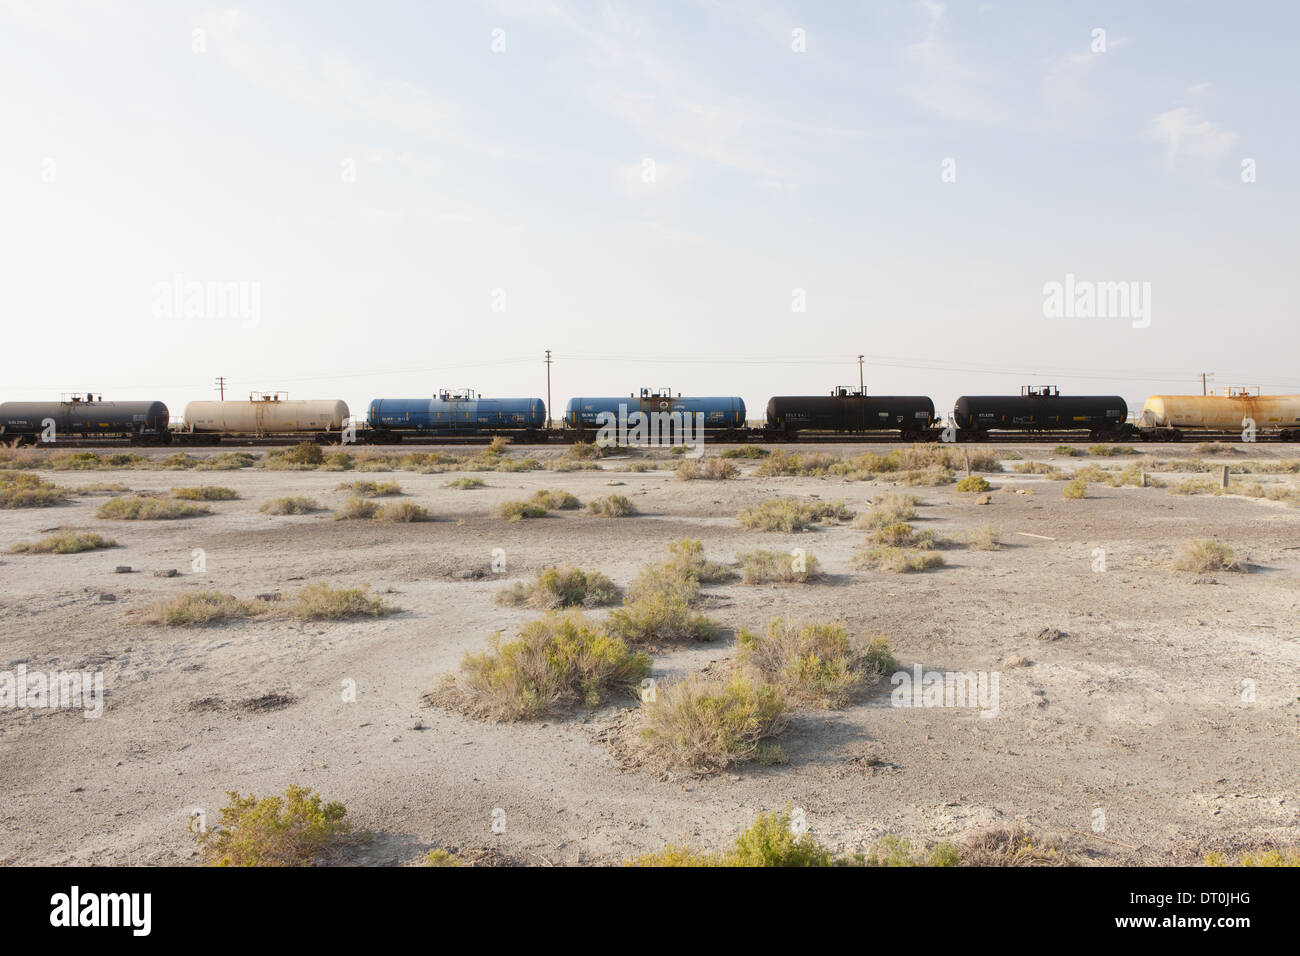 Utah USA goods train on the train track through the desert - Stock Image